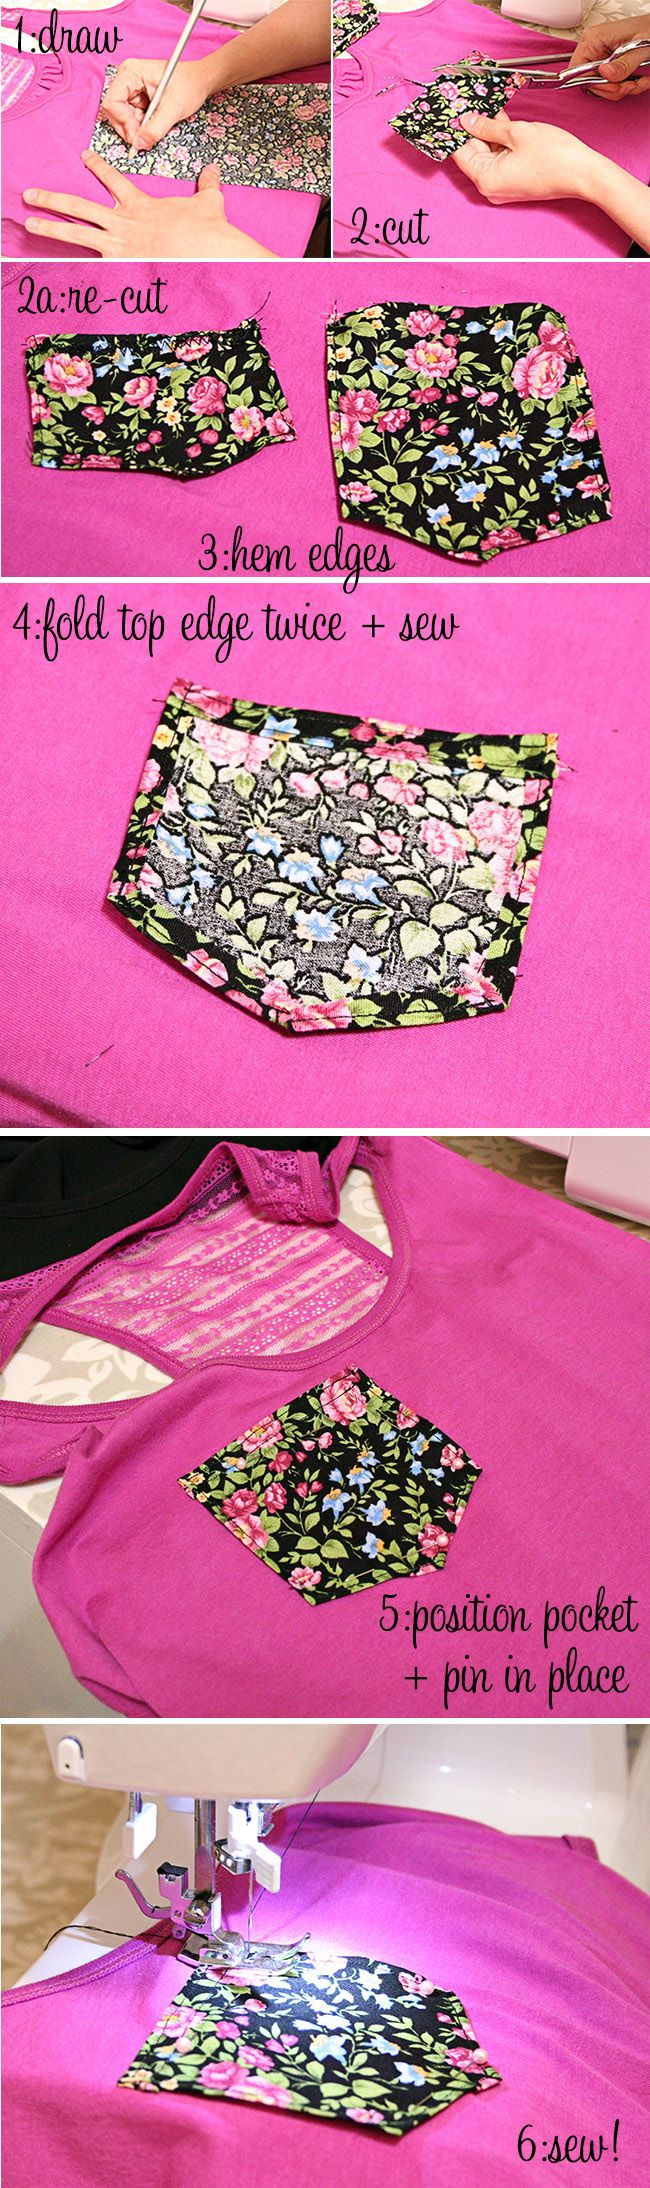 how to :: pocket square tank top upgrade - 6 easy steps !trying this today...hope I know how to sew..